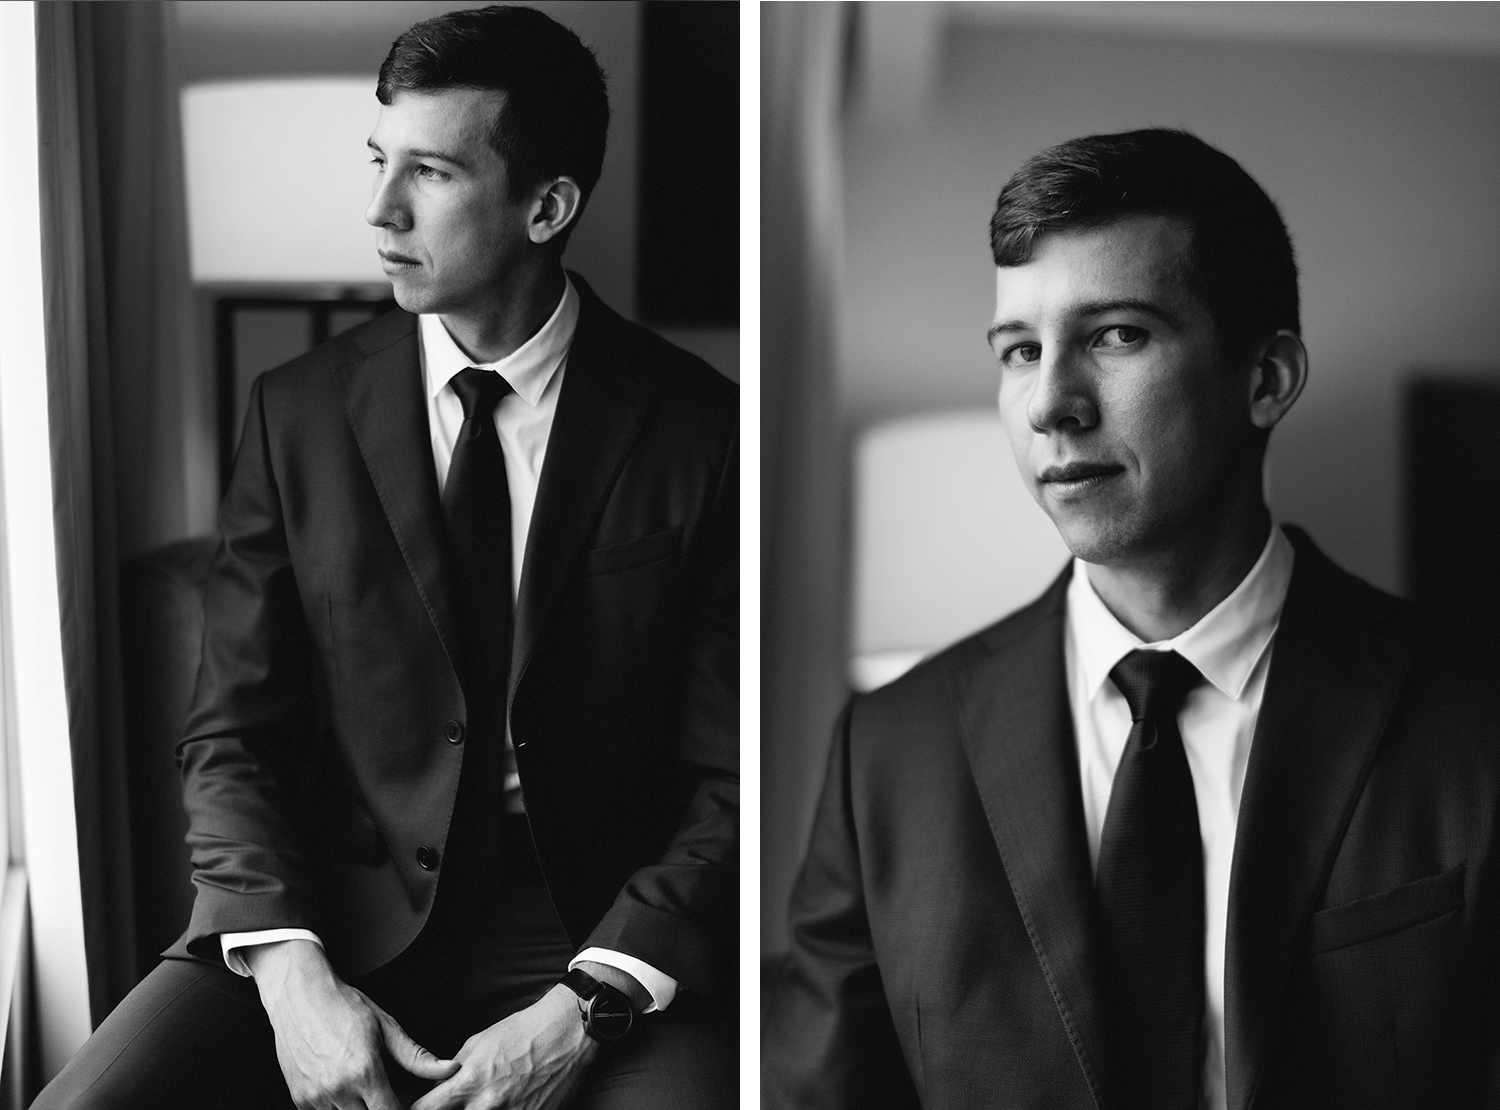 13-portrait-of-groom-by-window-at-hotel-getting-ready-in-london-ontario-wedding-inspiration.jpg